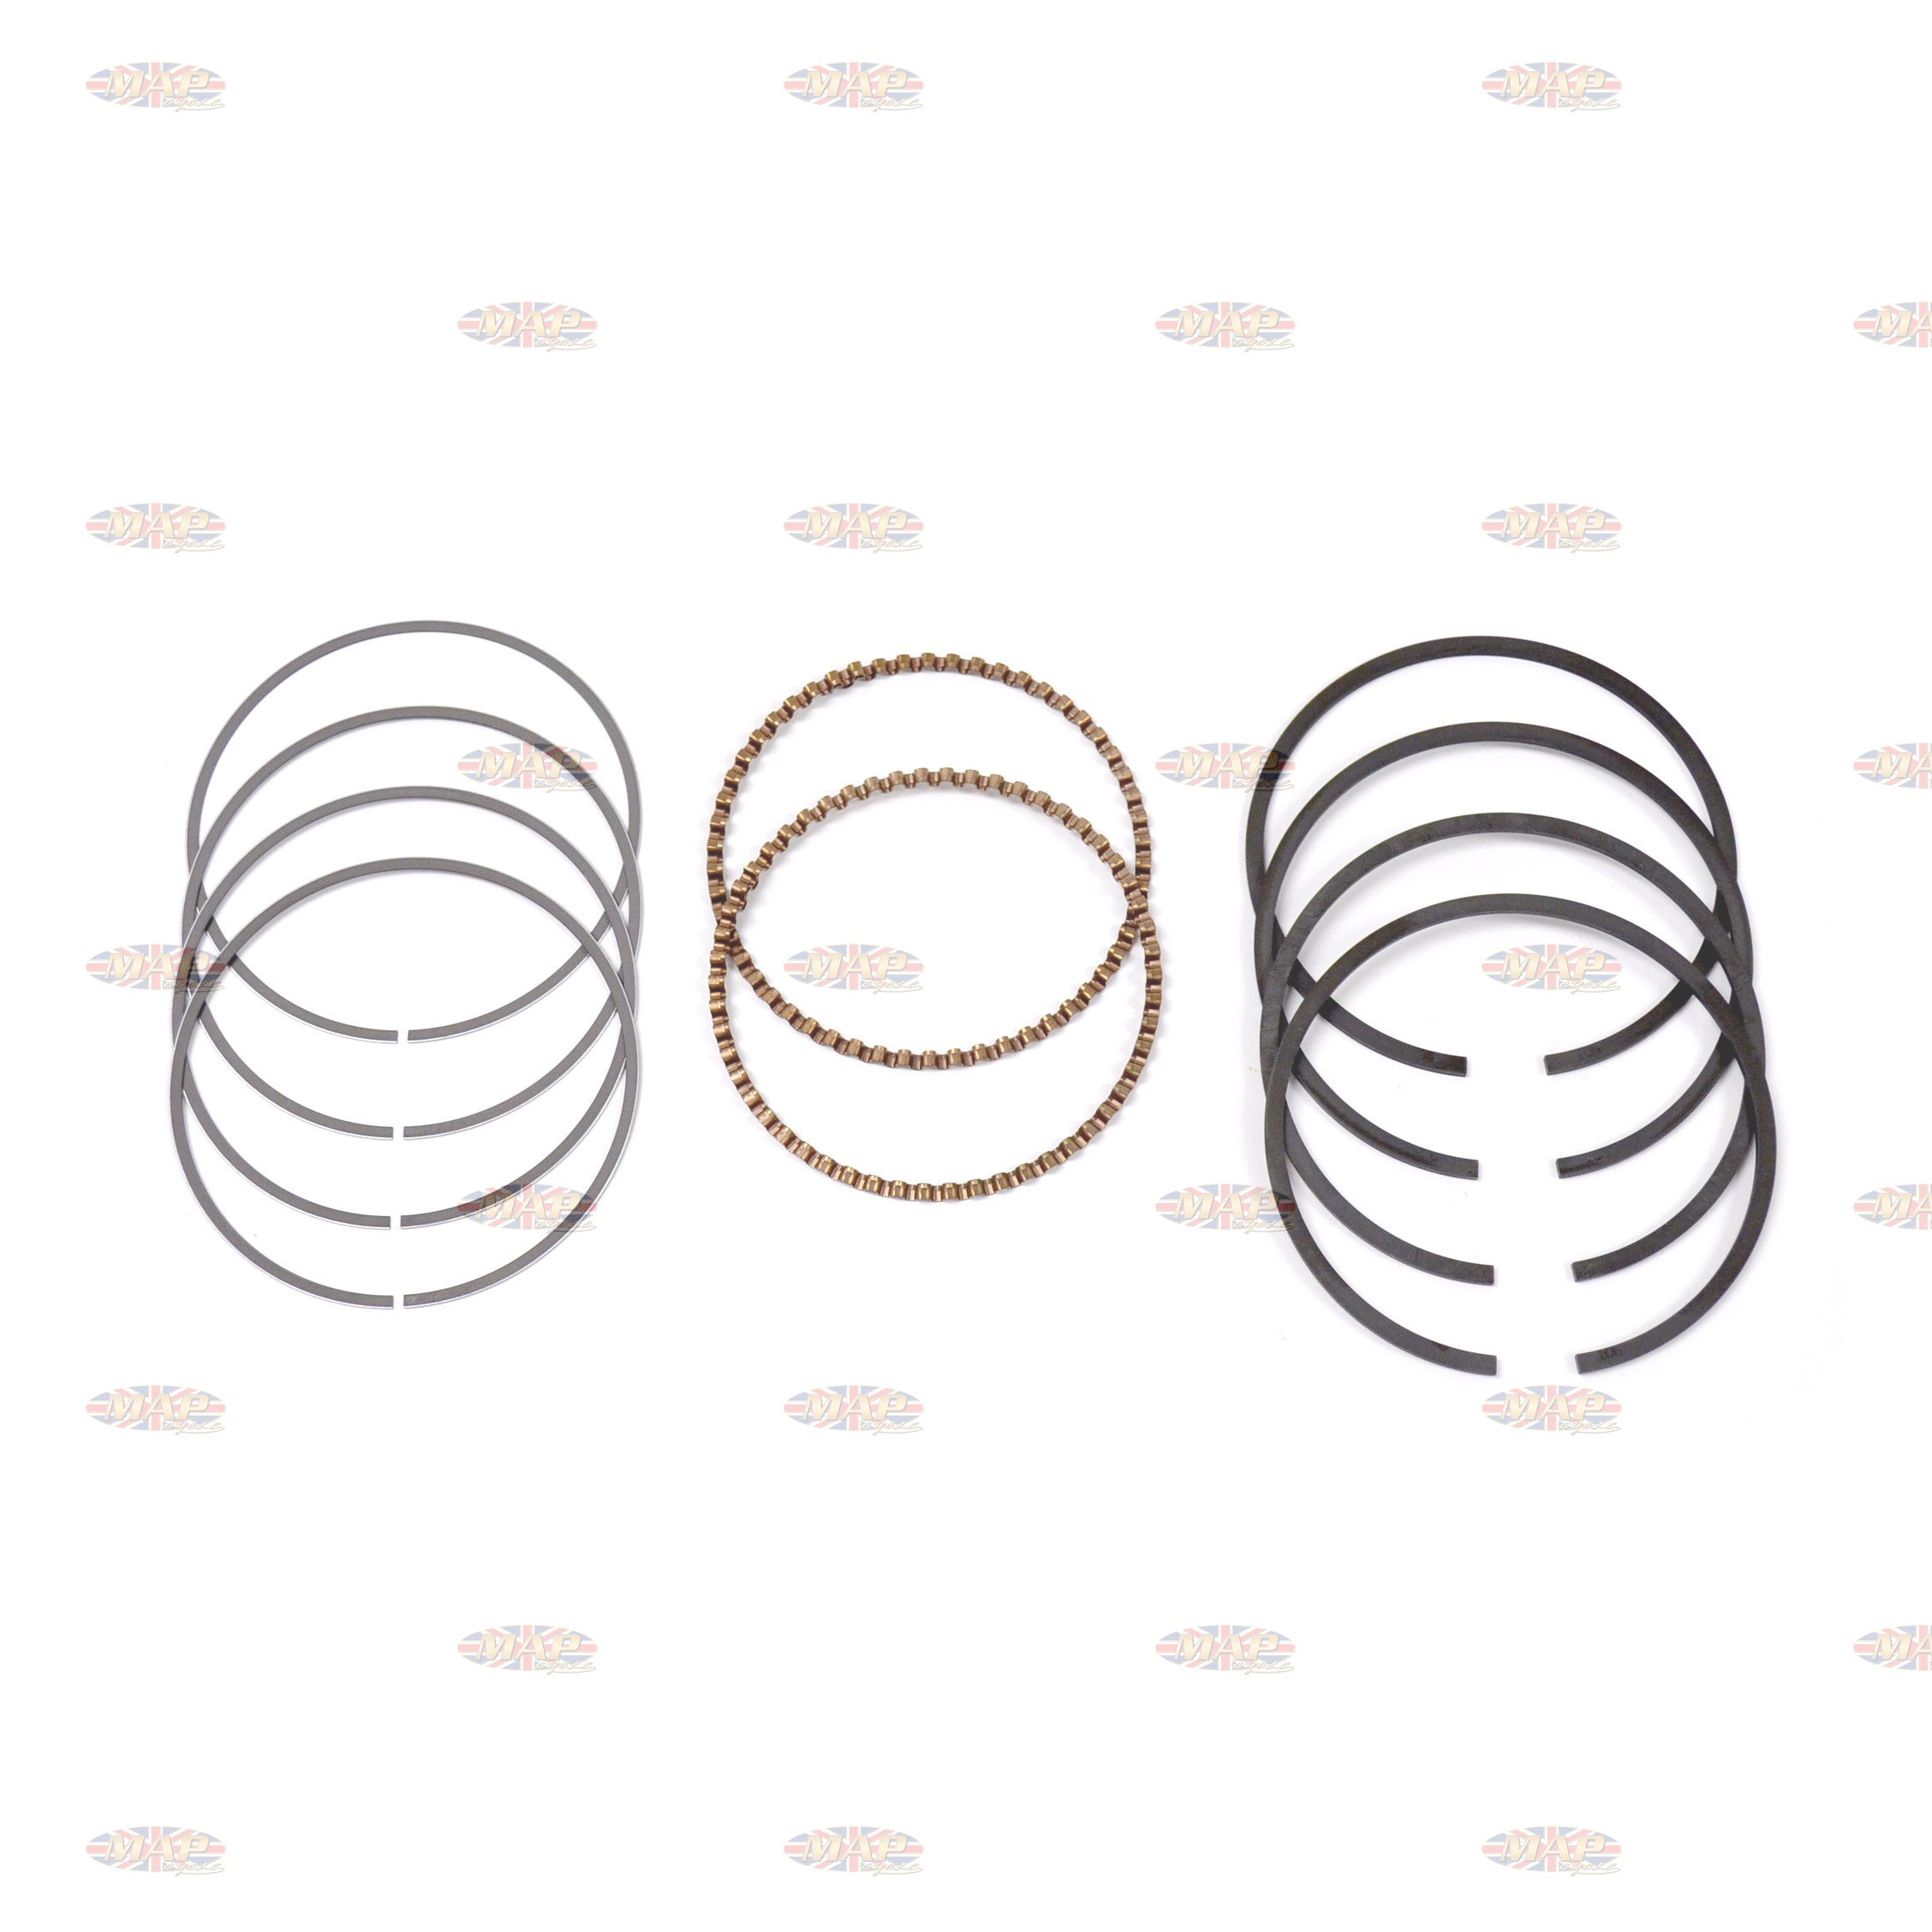 Norton 750 Commando Piston Rings R26260